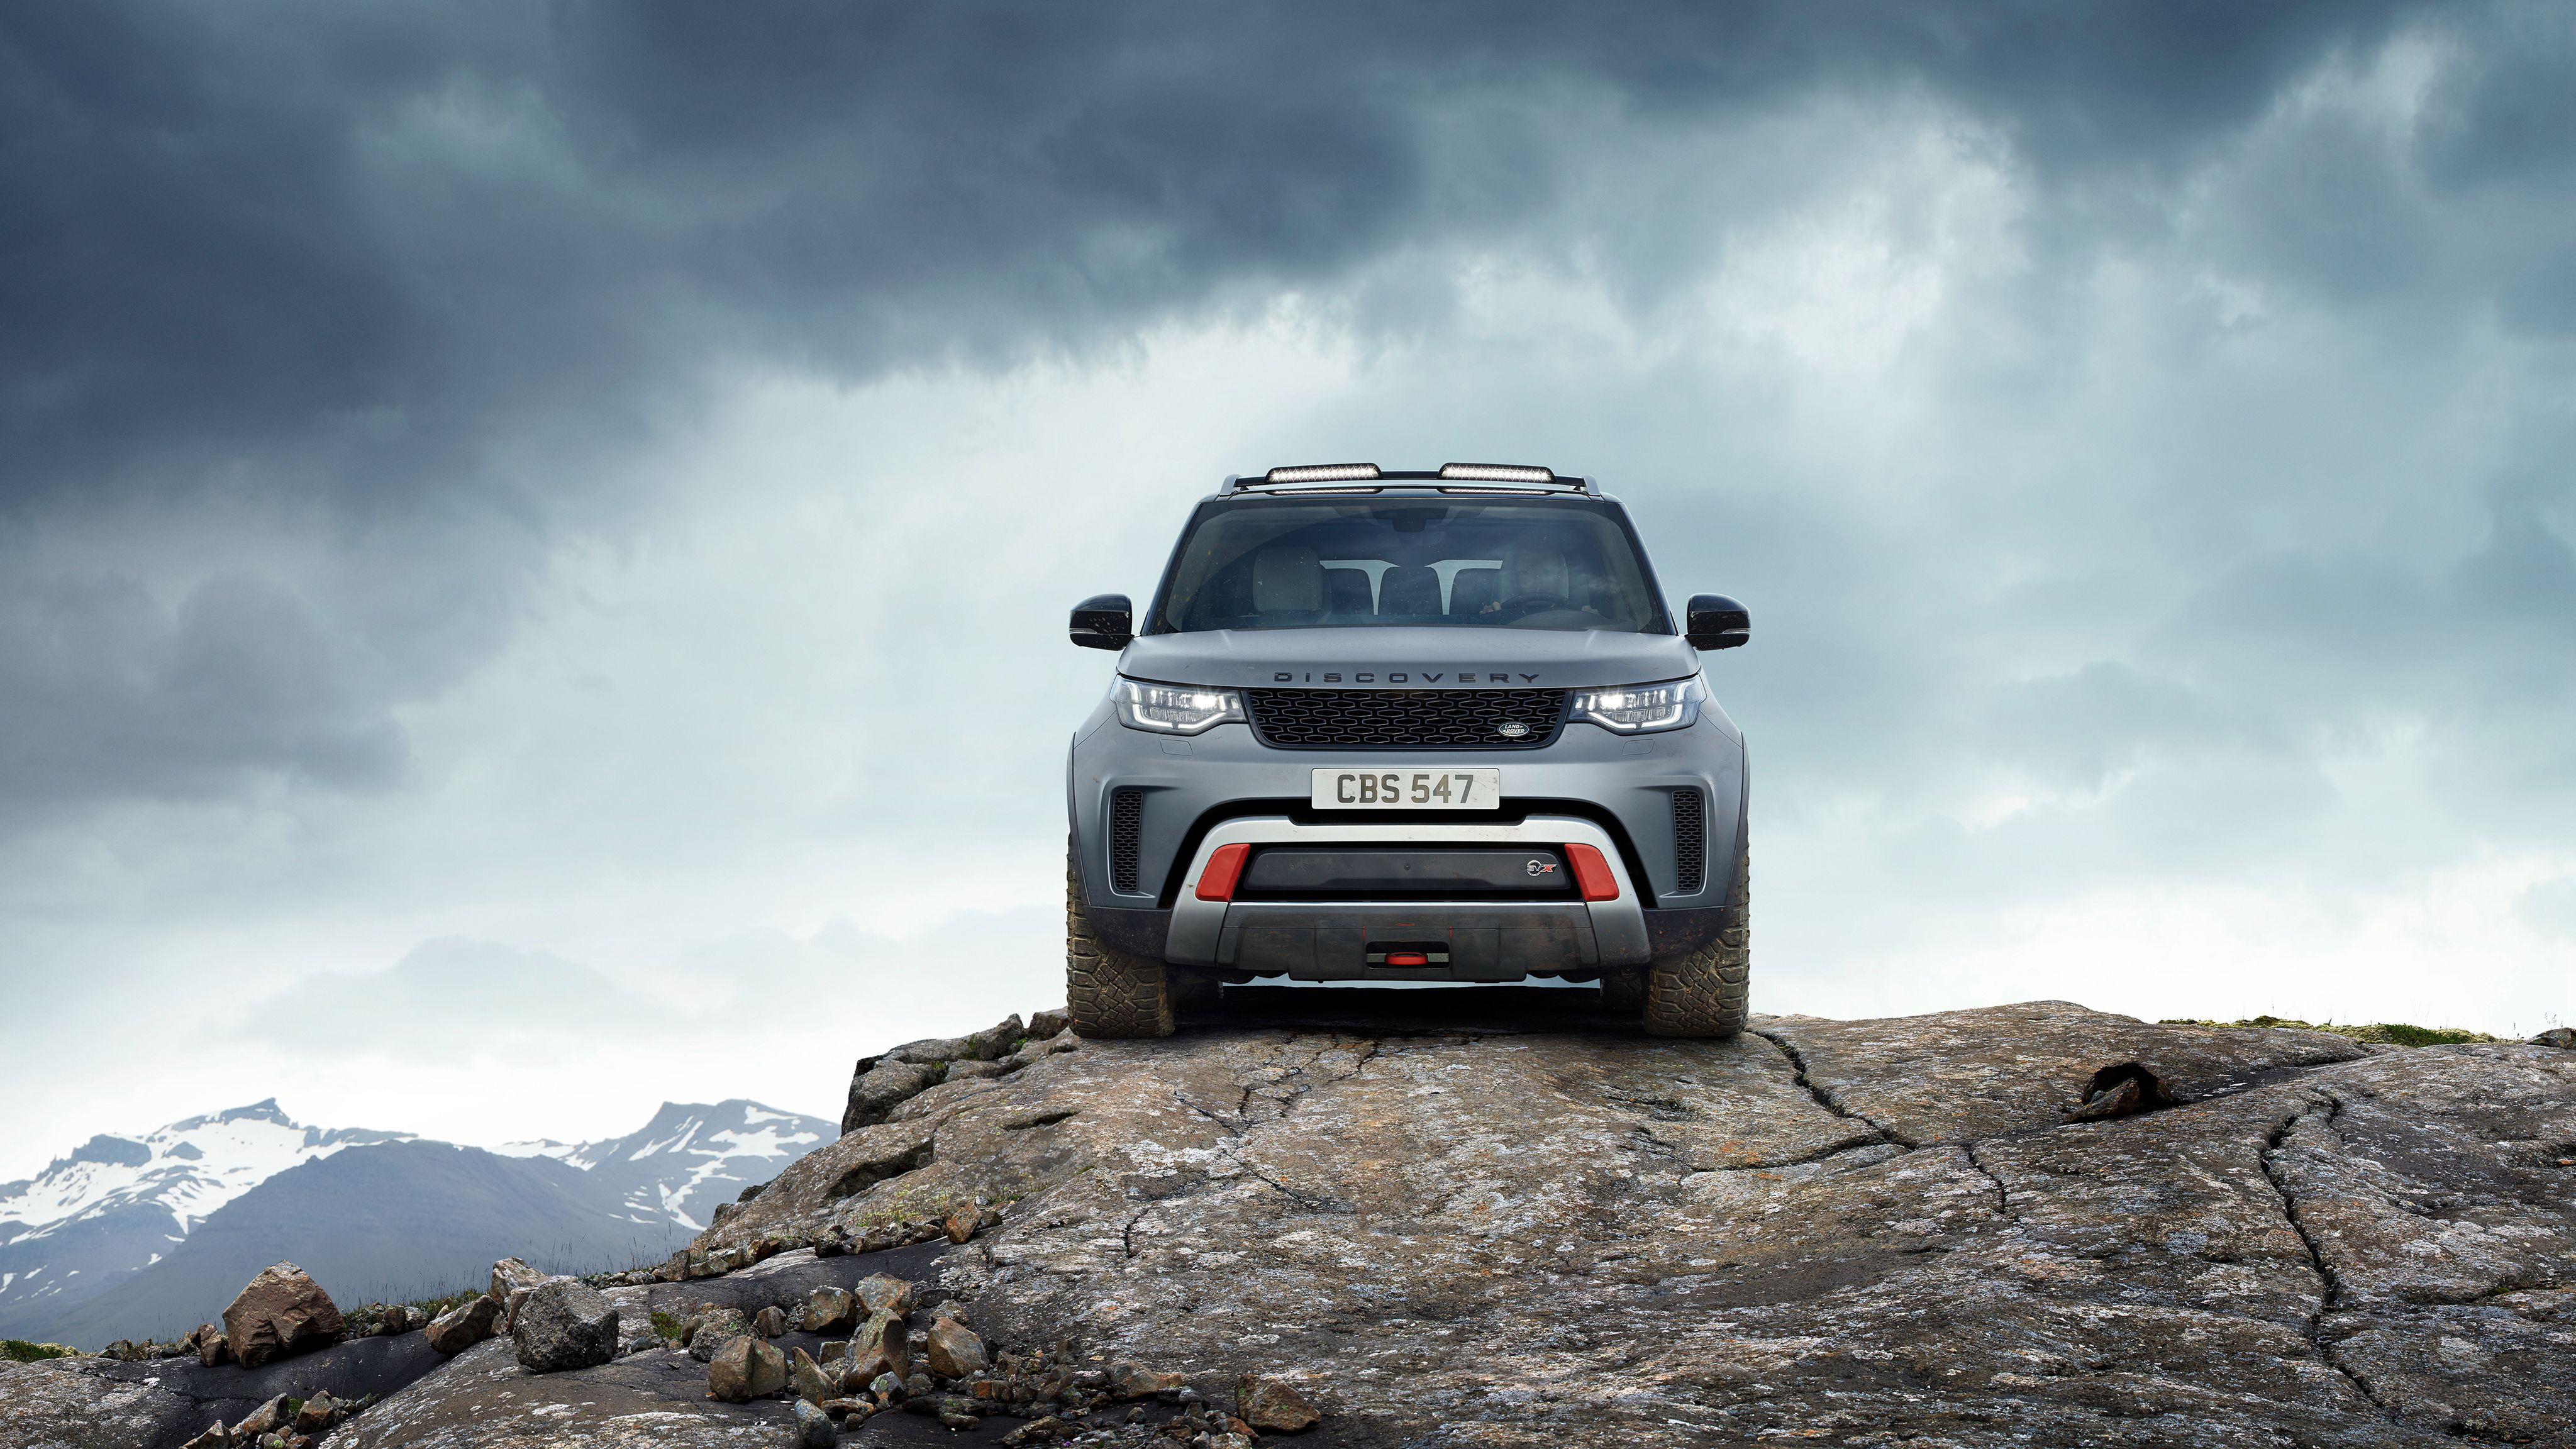 Wallpapers Land Rover Discovery SVX, 2019, 4K, Automotive / Cars,